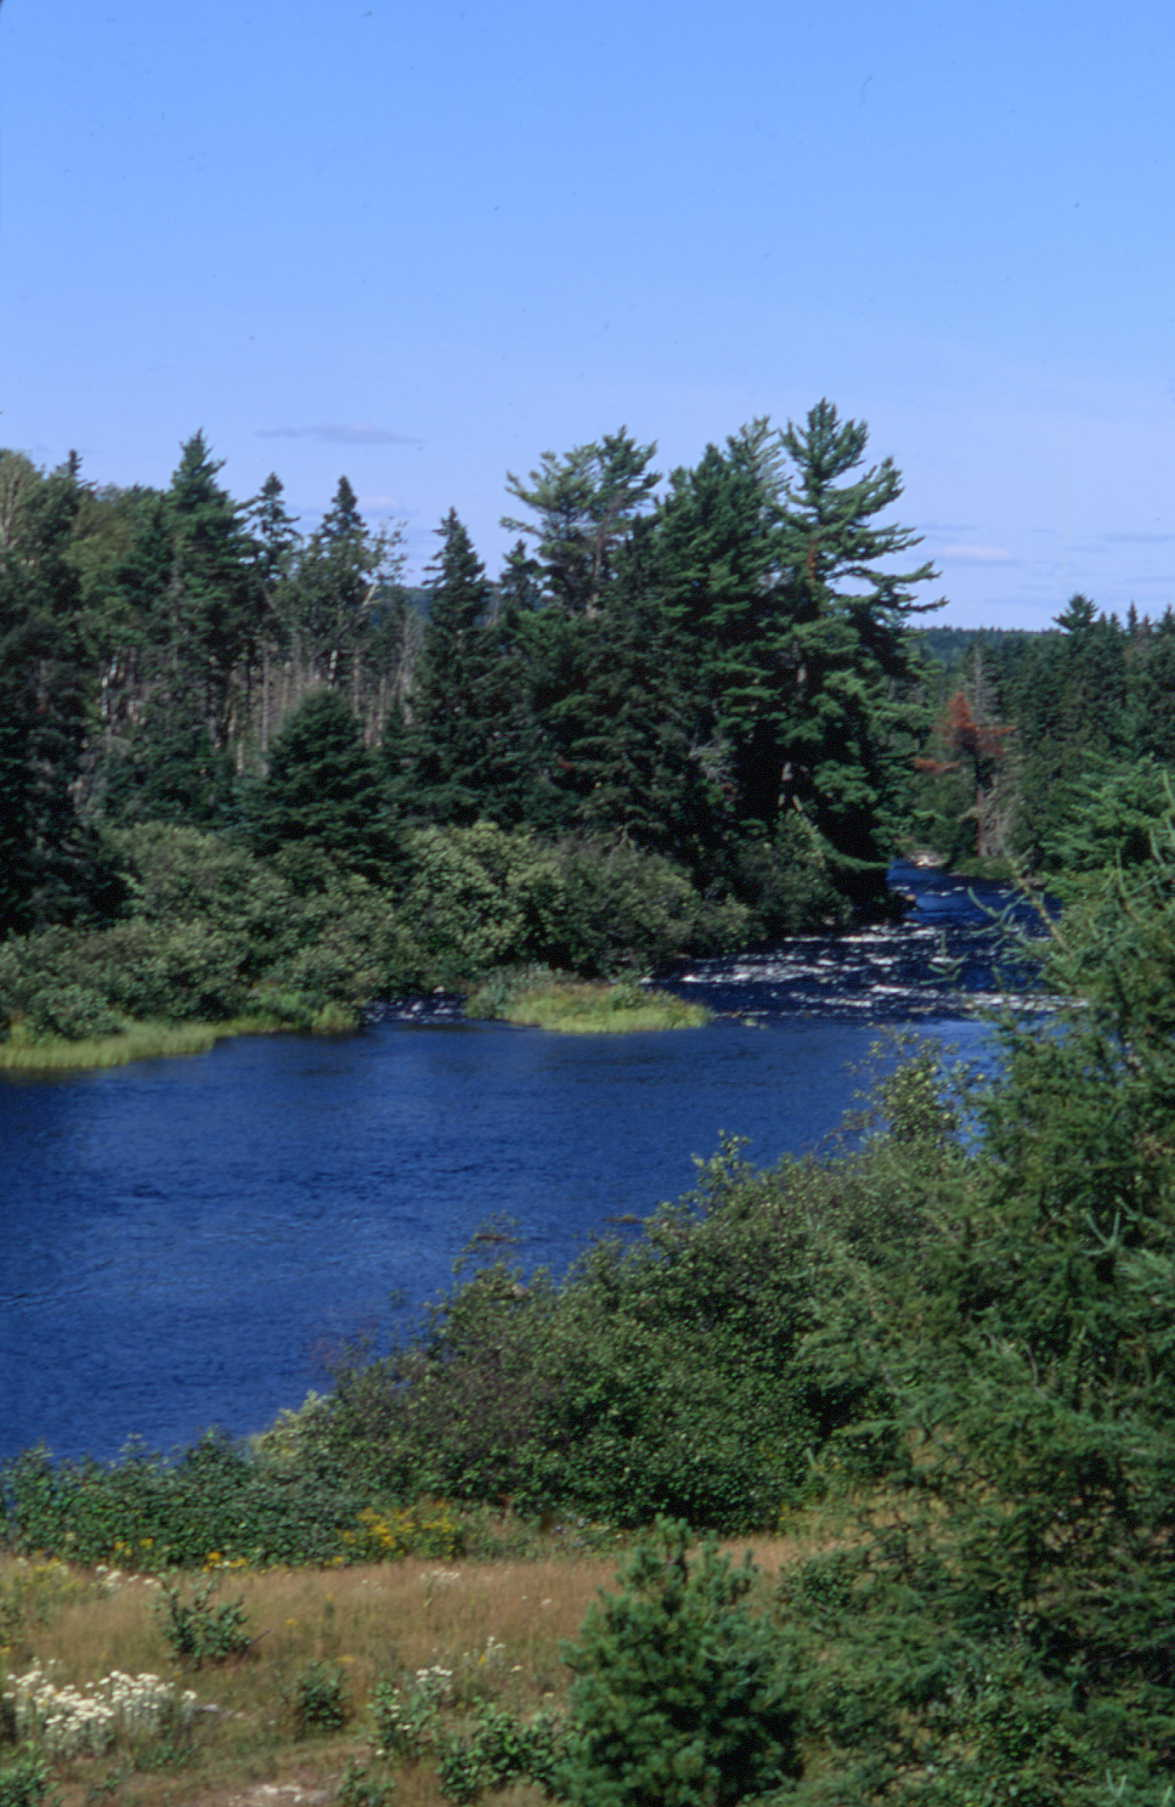 allagash wilderness waterway a natural history guide